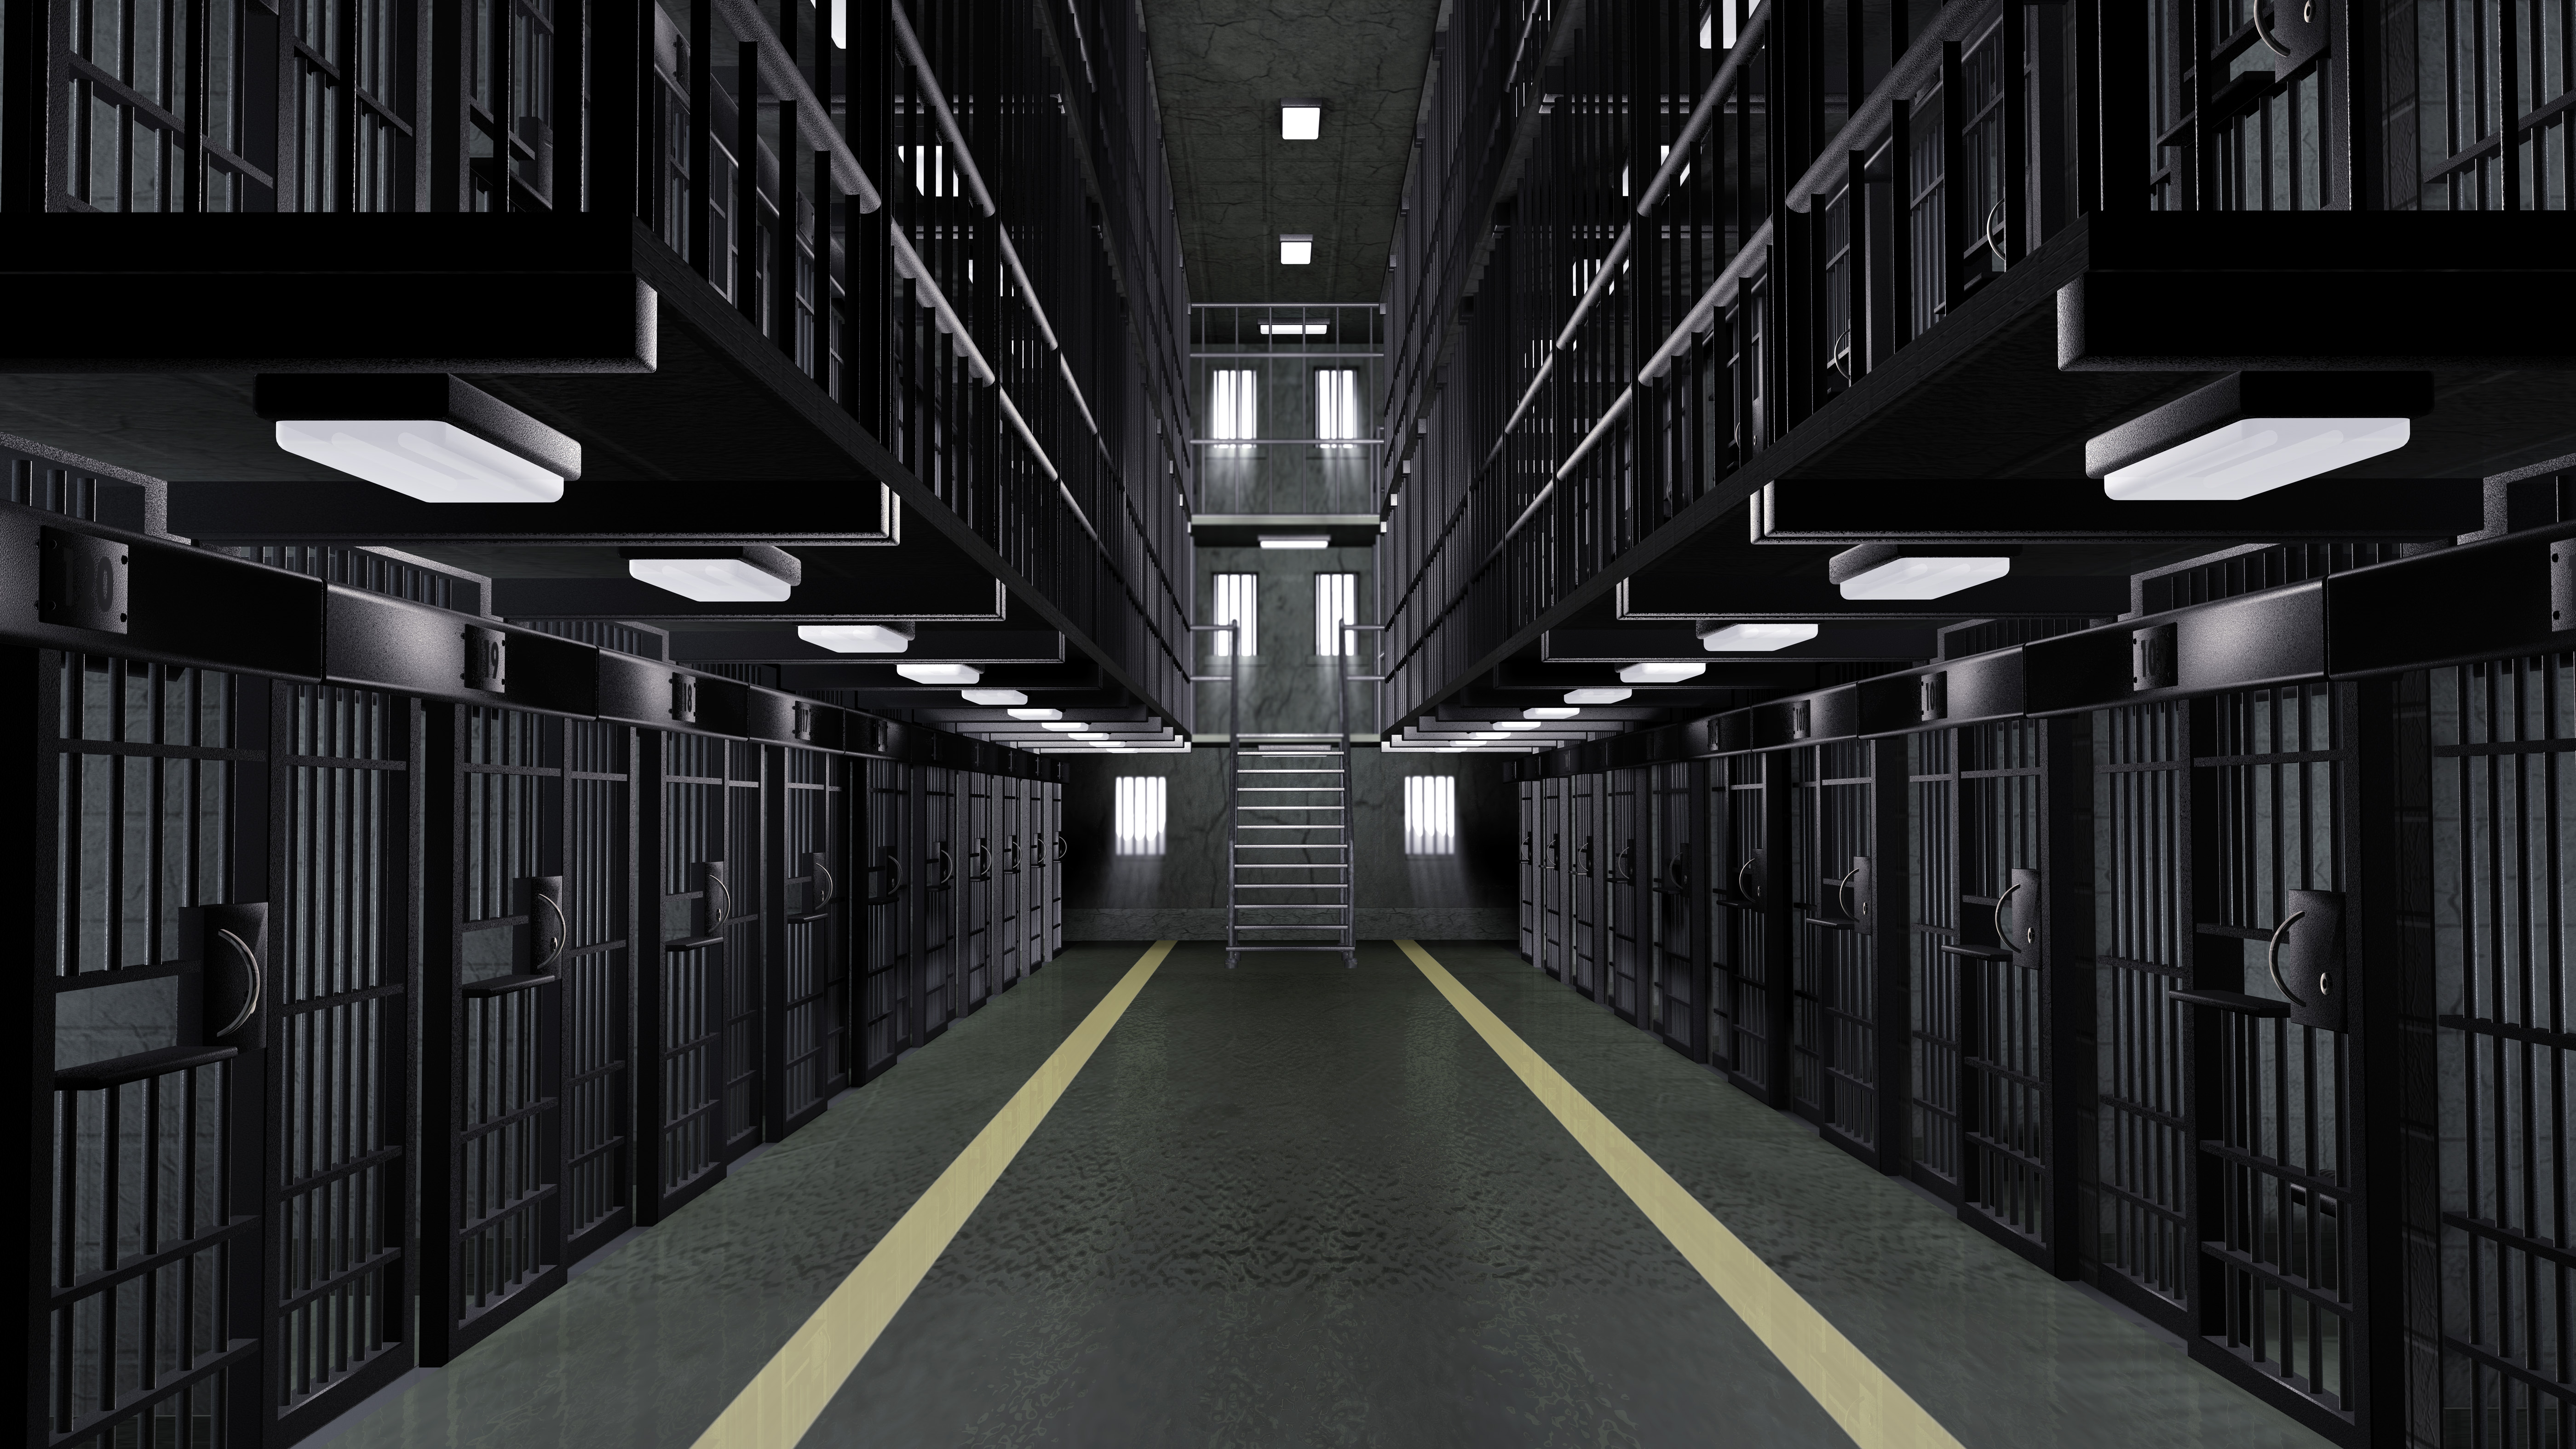 Tips on Passing the Correctional Officer Psych Evaluation | Chron com